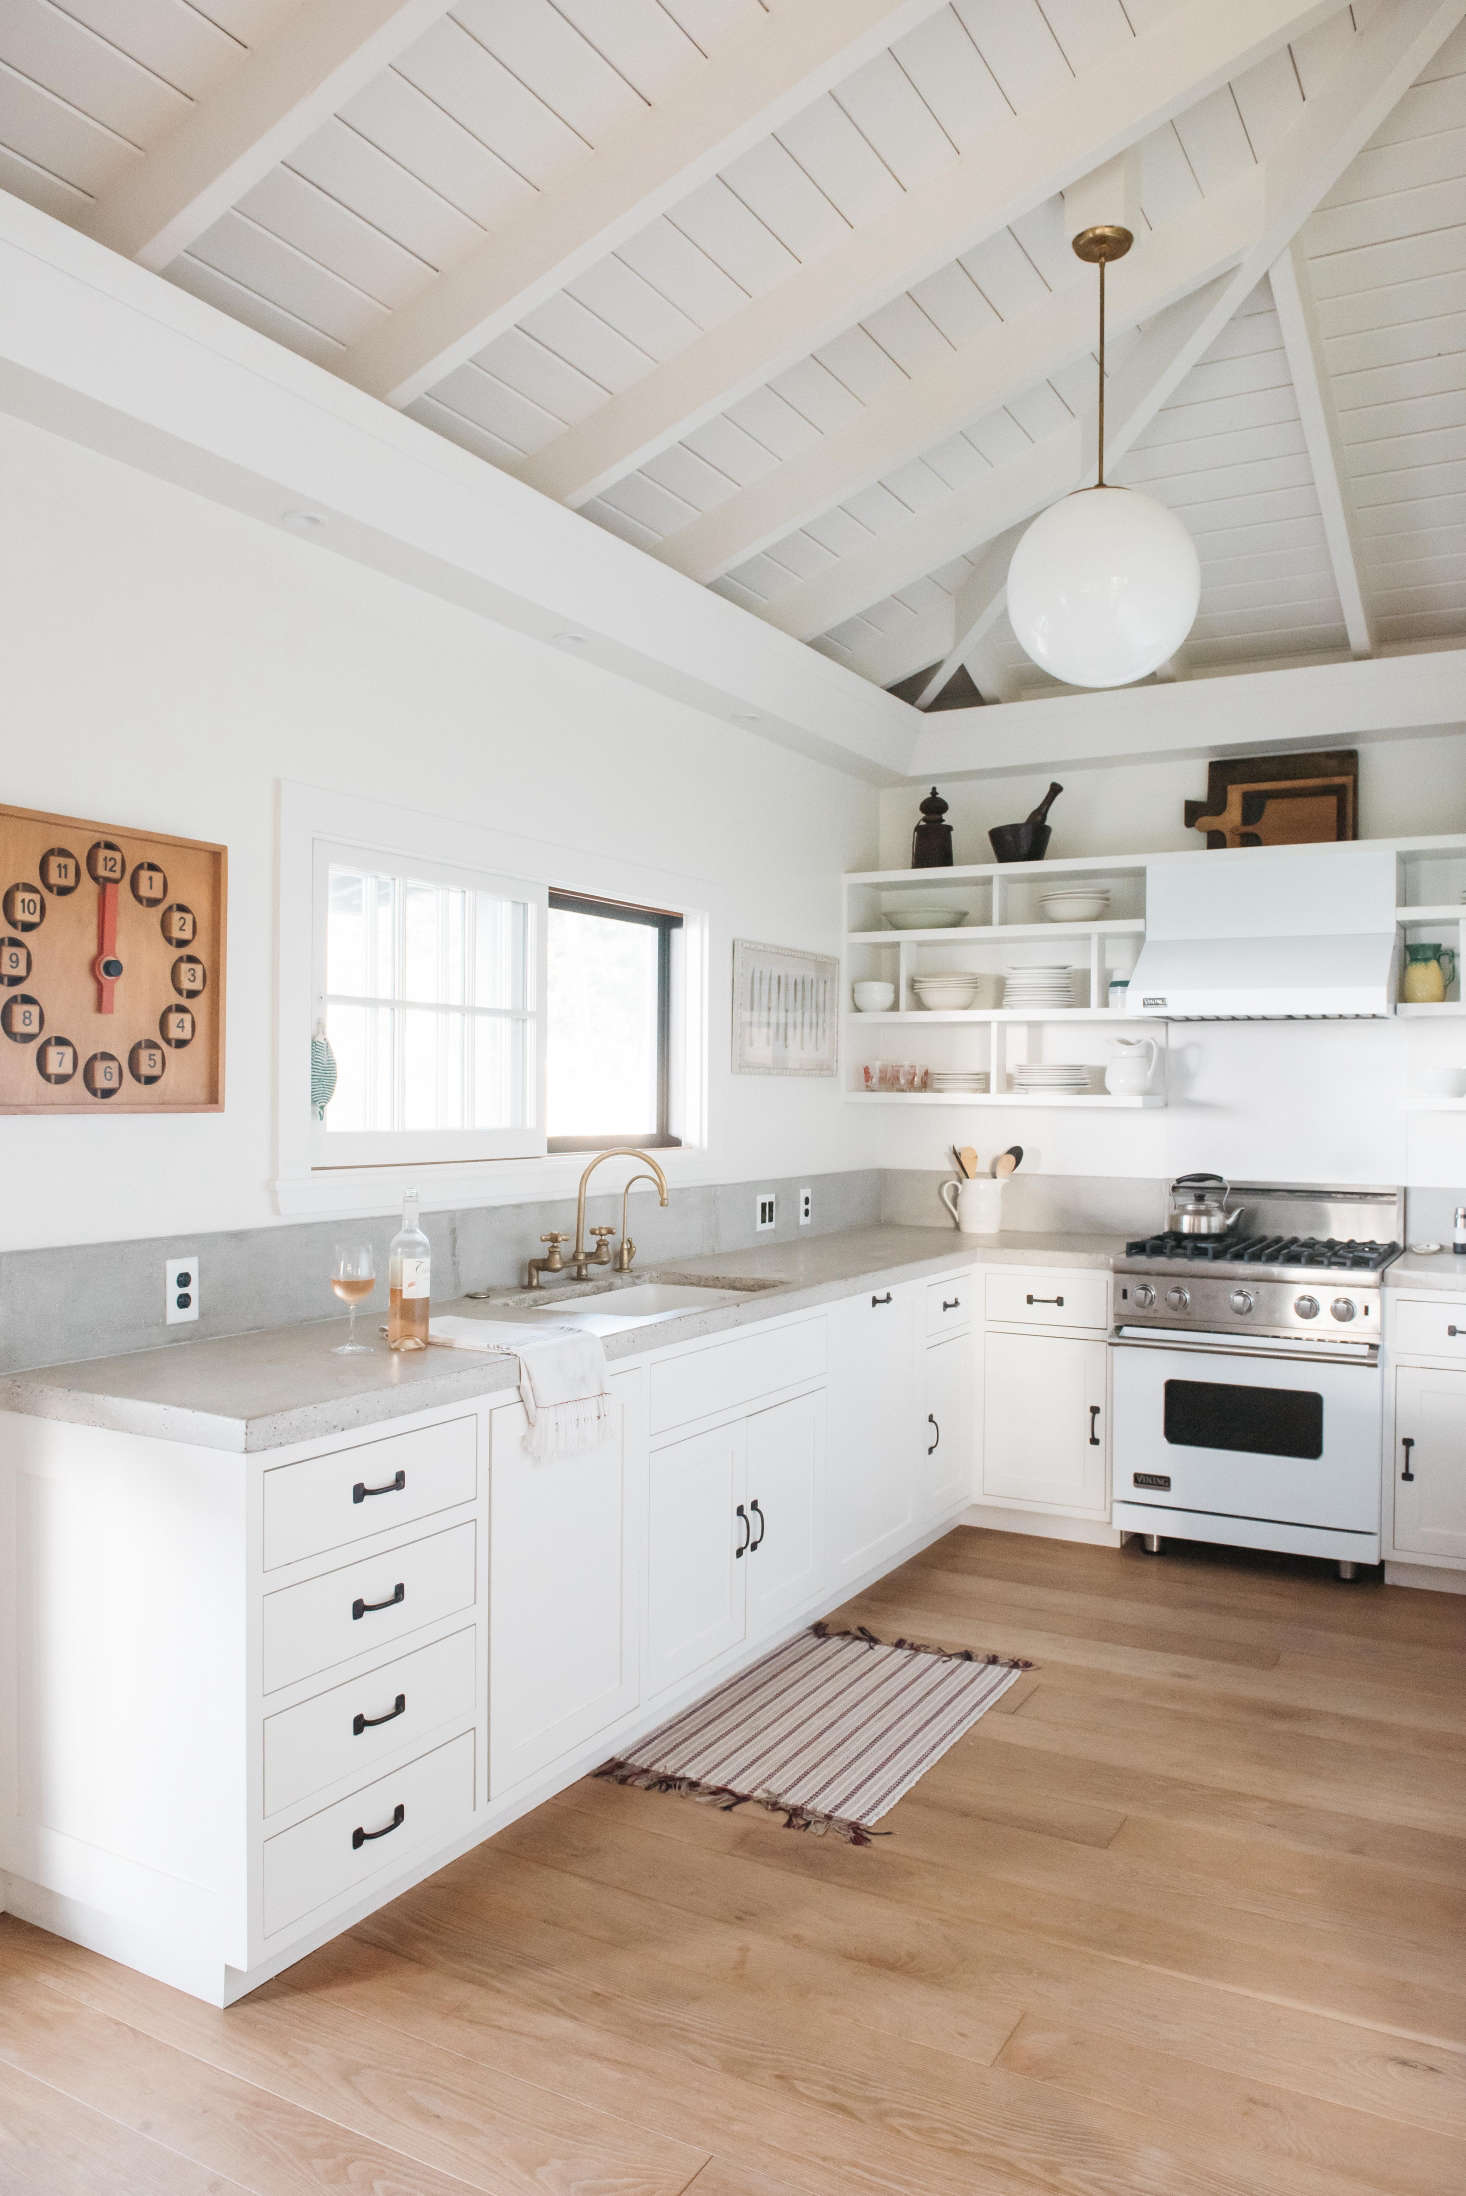 Remodeling 101: What to Know When Replacing Your Range - Remodelista